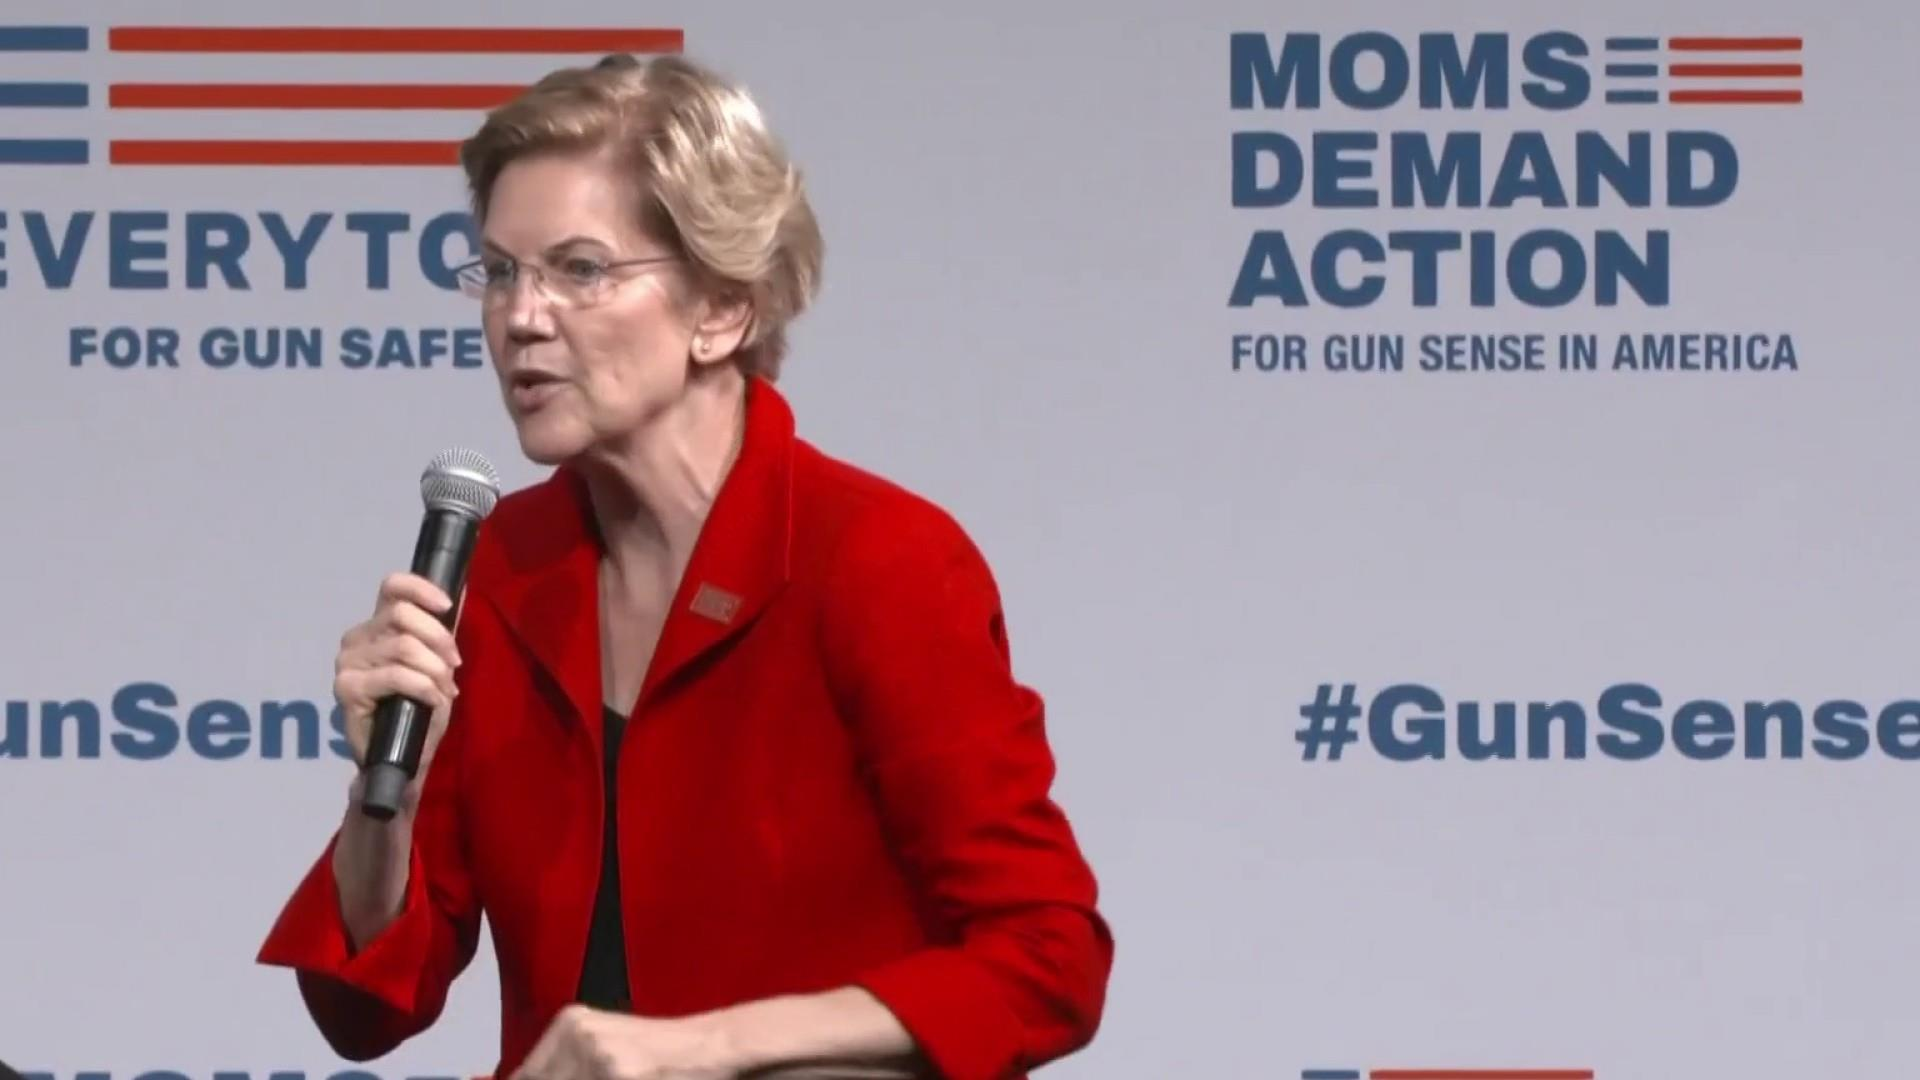 Democratic candidates show unity on gun control in wake of shootings